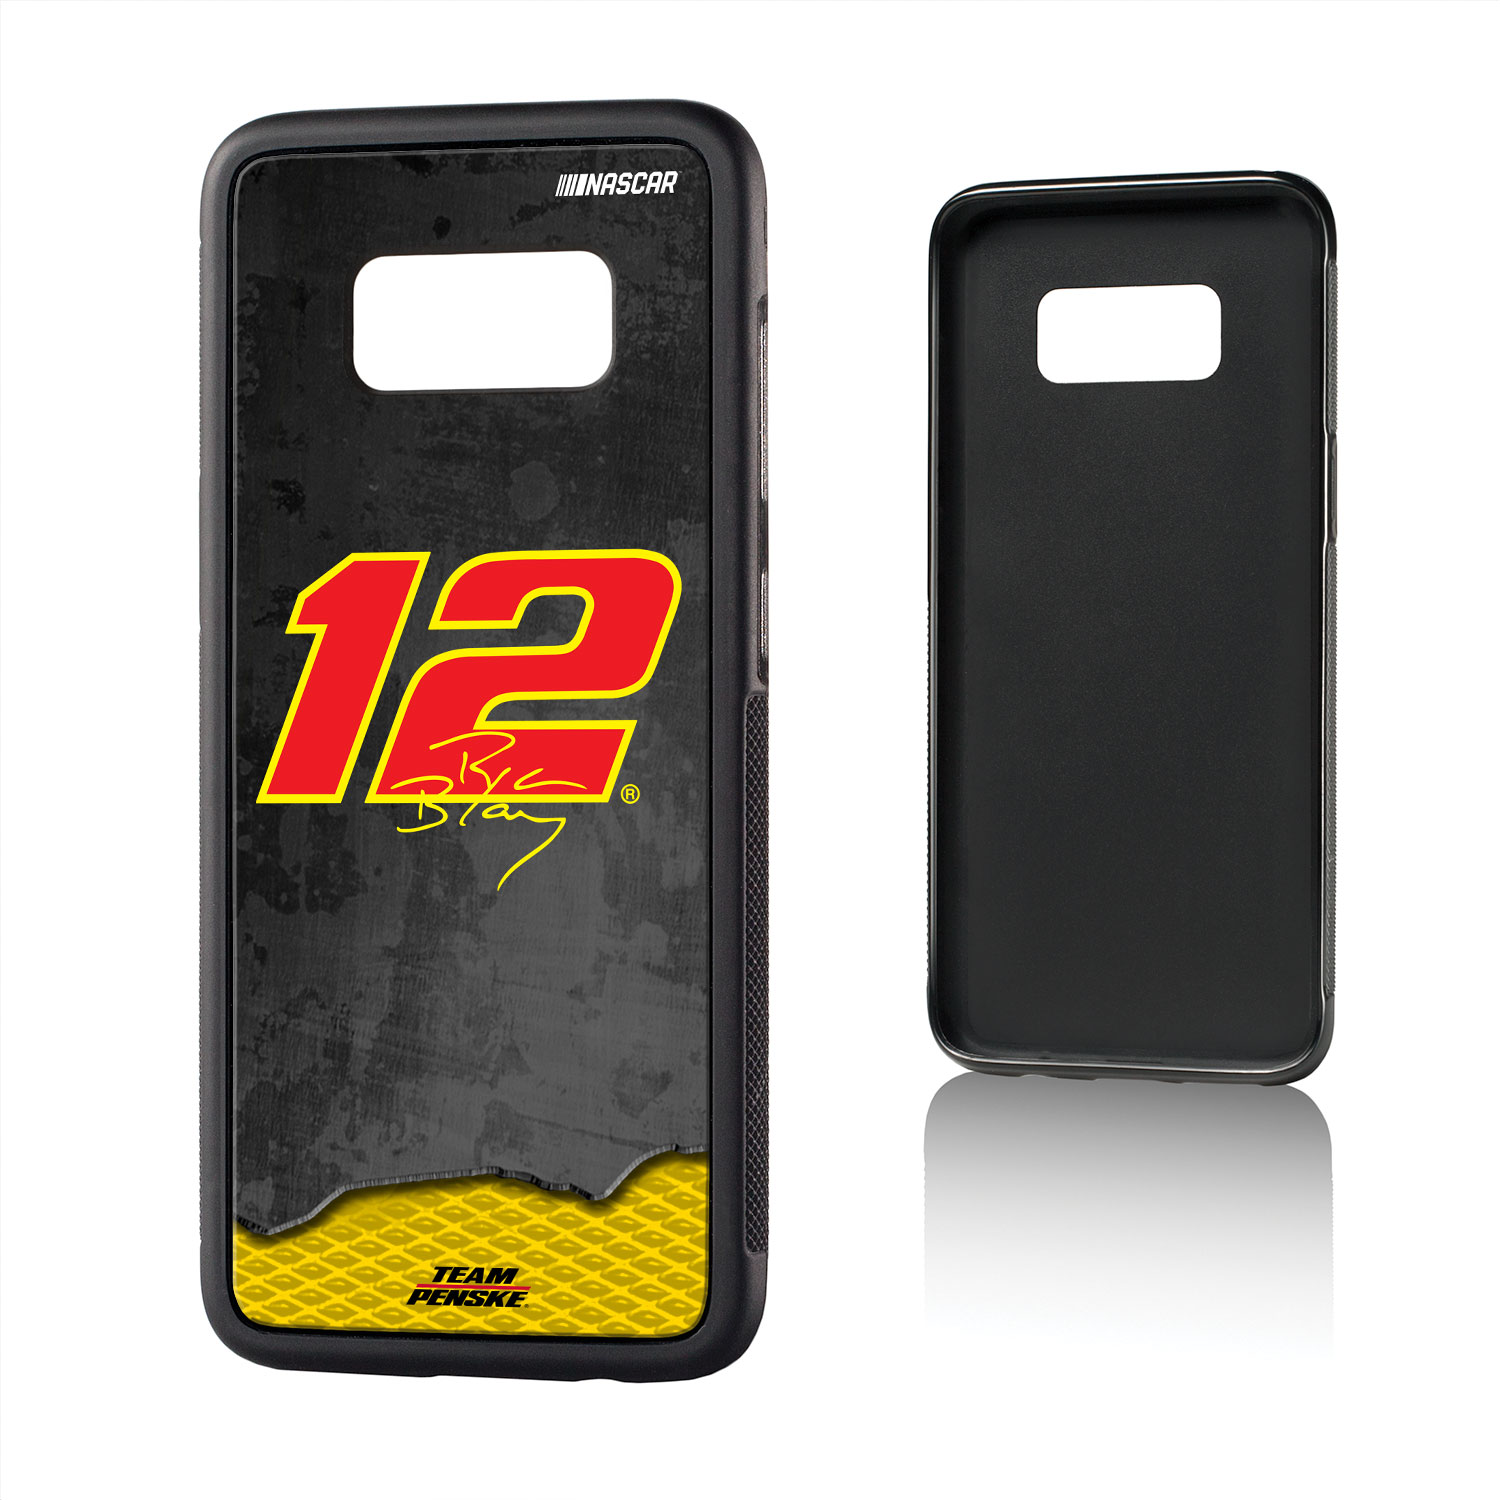 Ryan Blaney Fast Bump Case for Galaxy S8